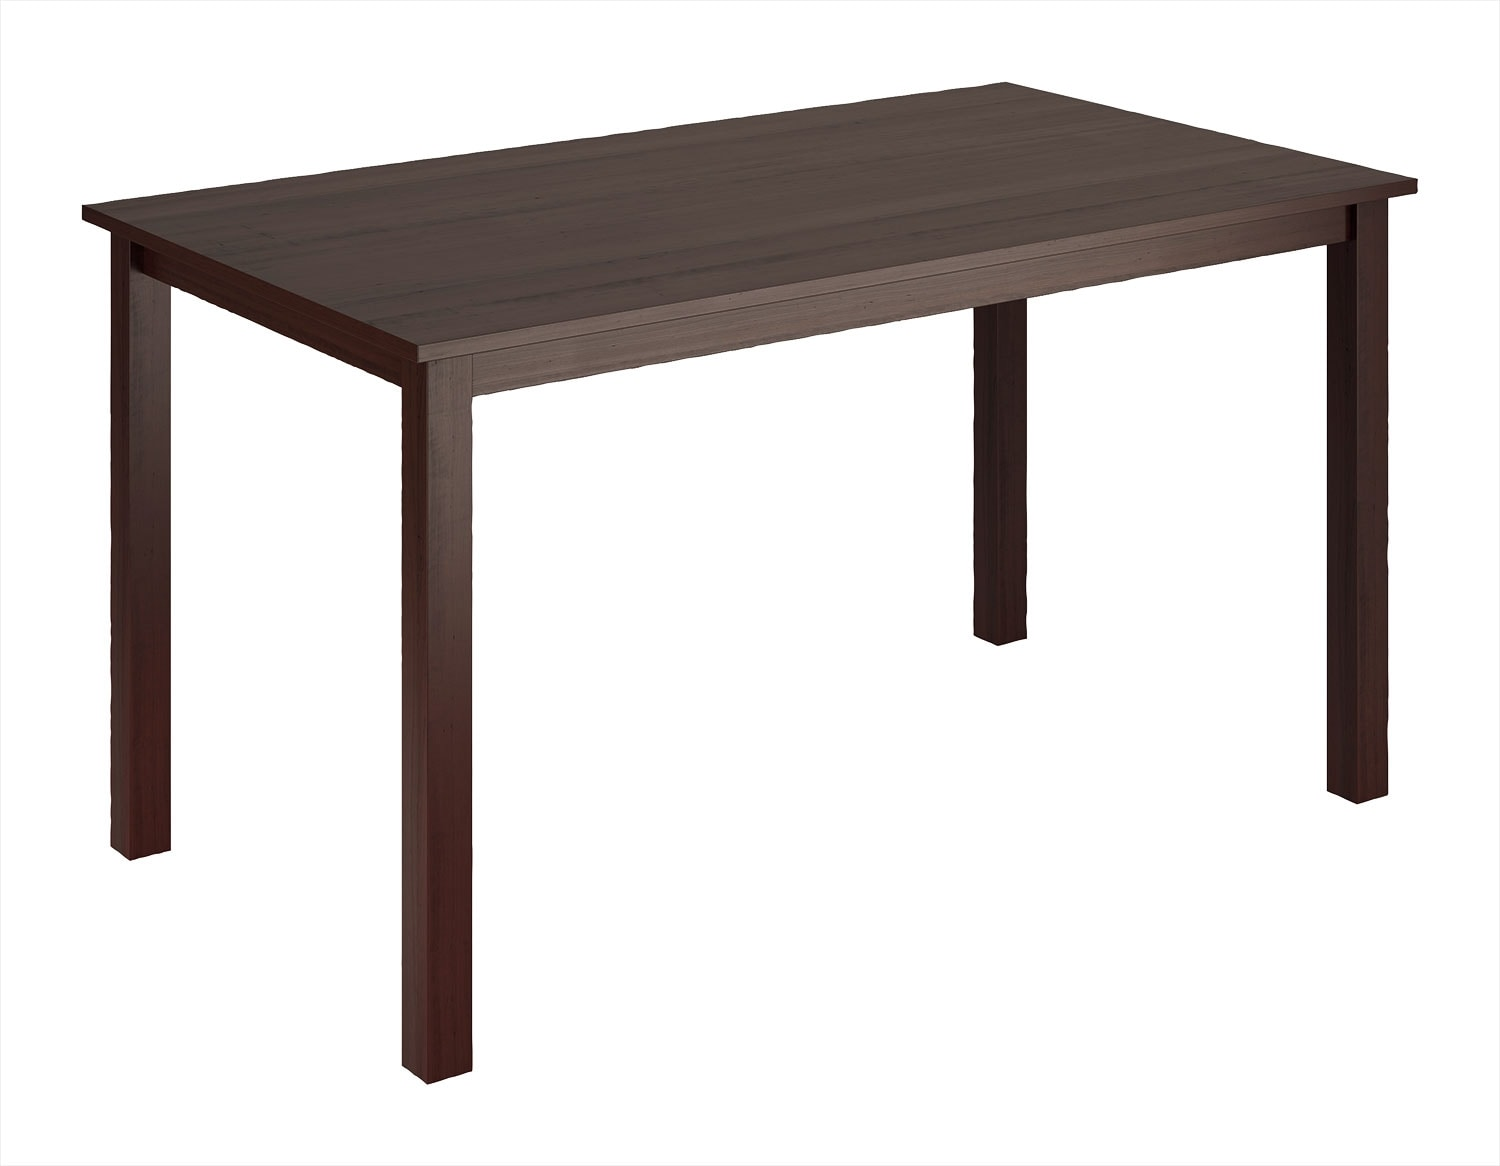 "Dining Room Furniture - Atwood 55"" Rectangular Dining Table"